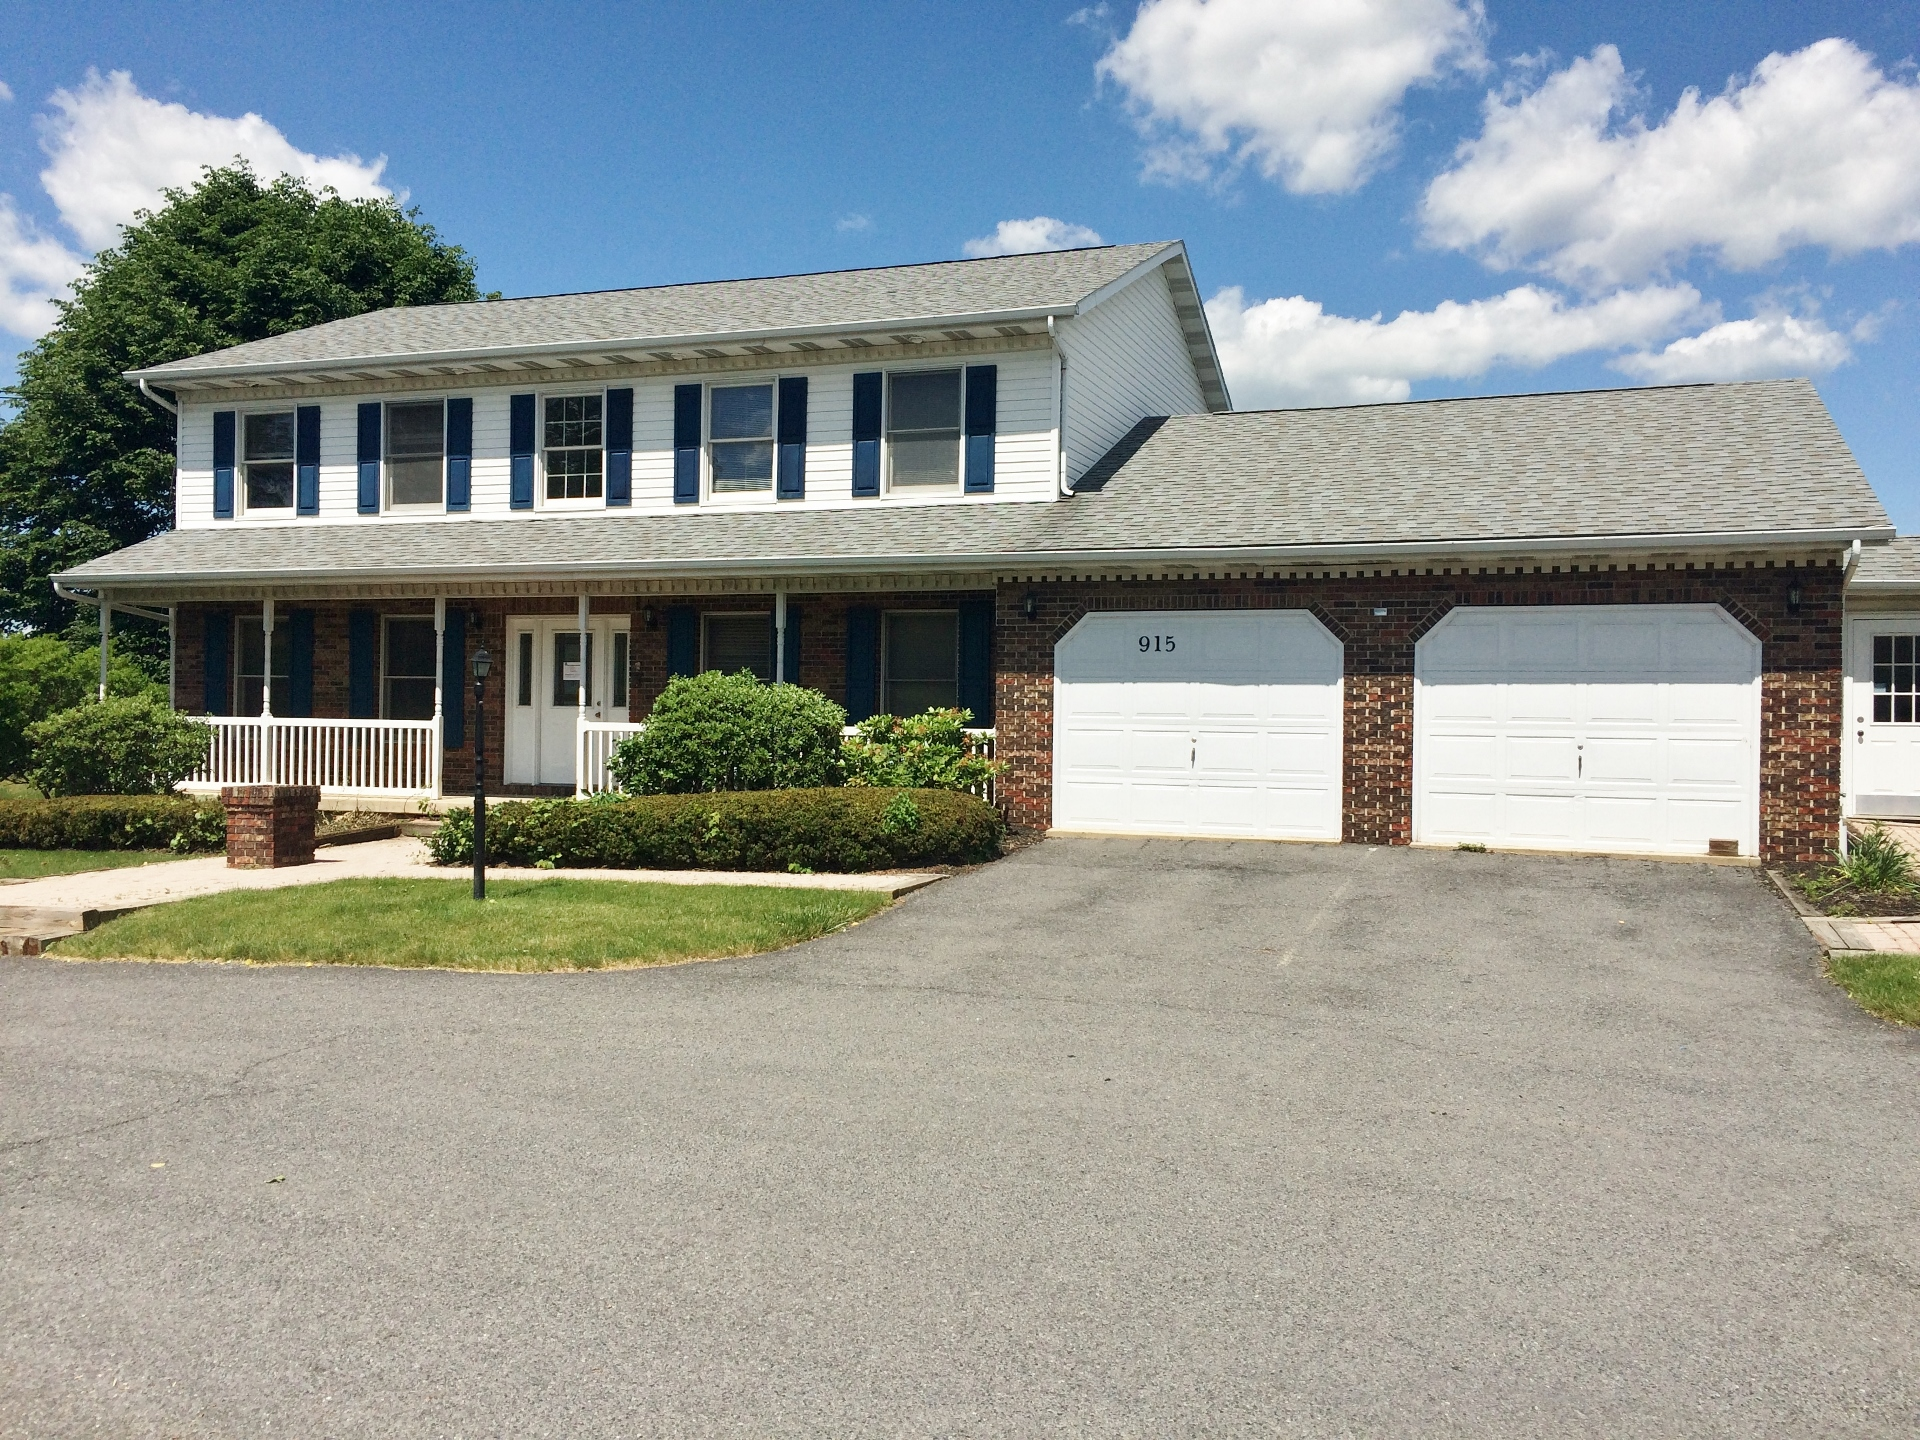 915 Benner Pike, State College, PA  16801